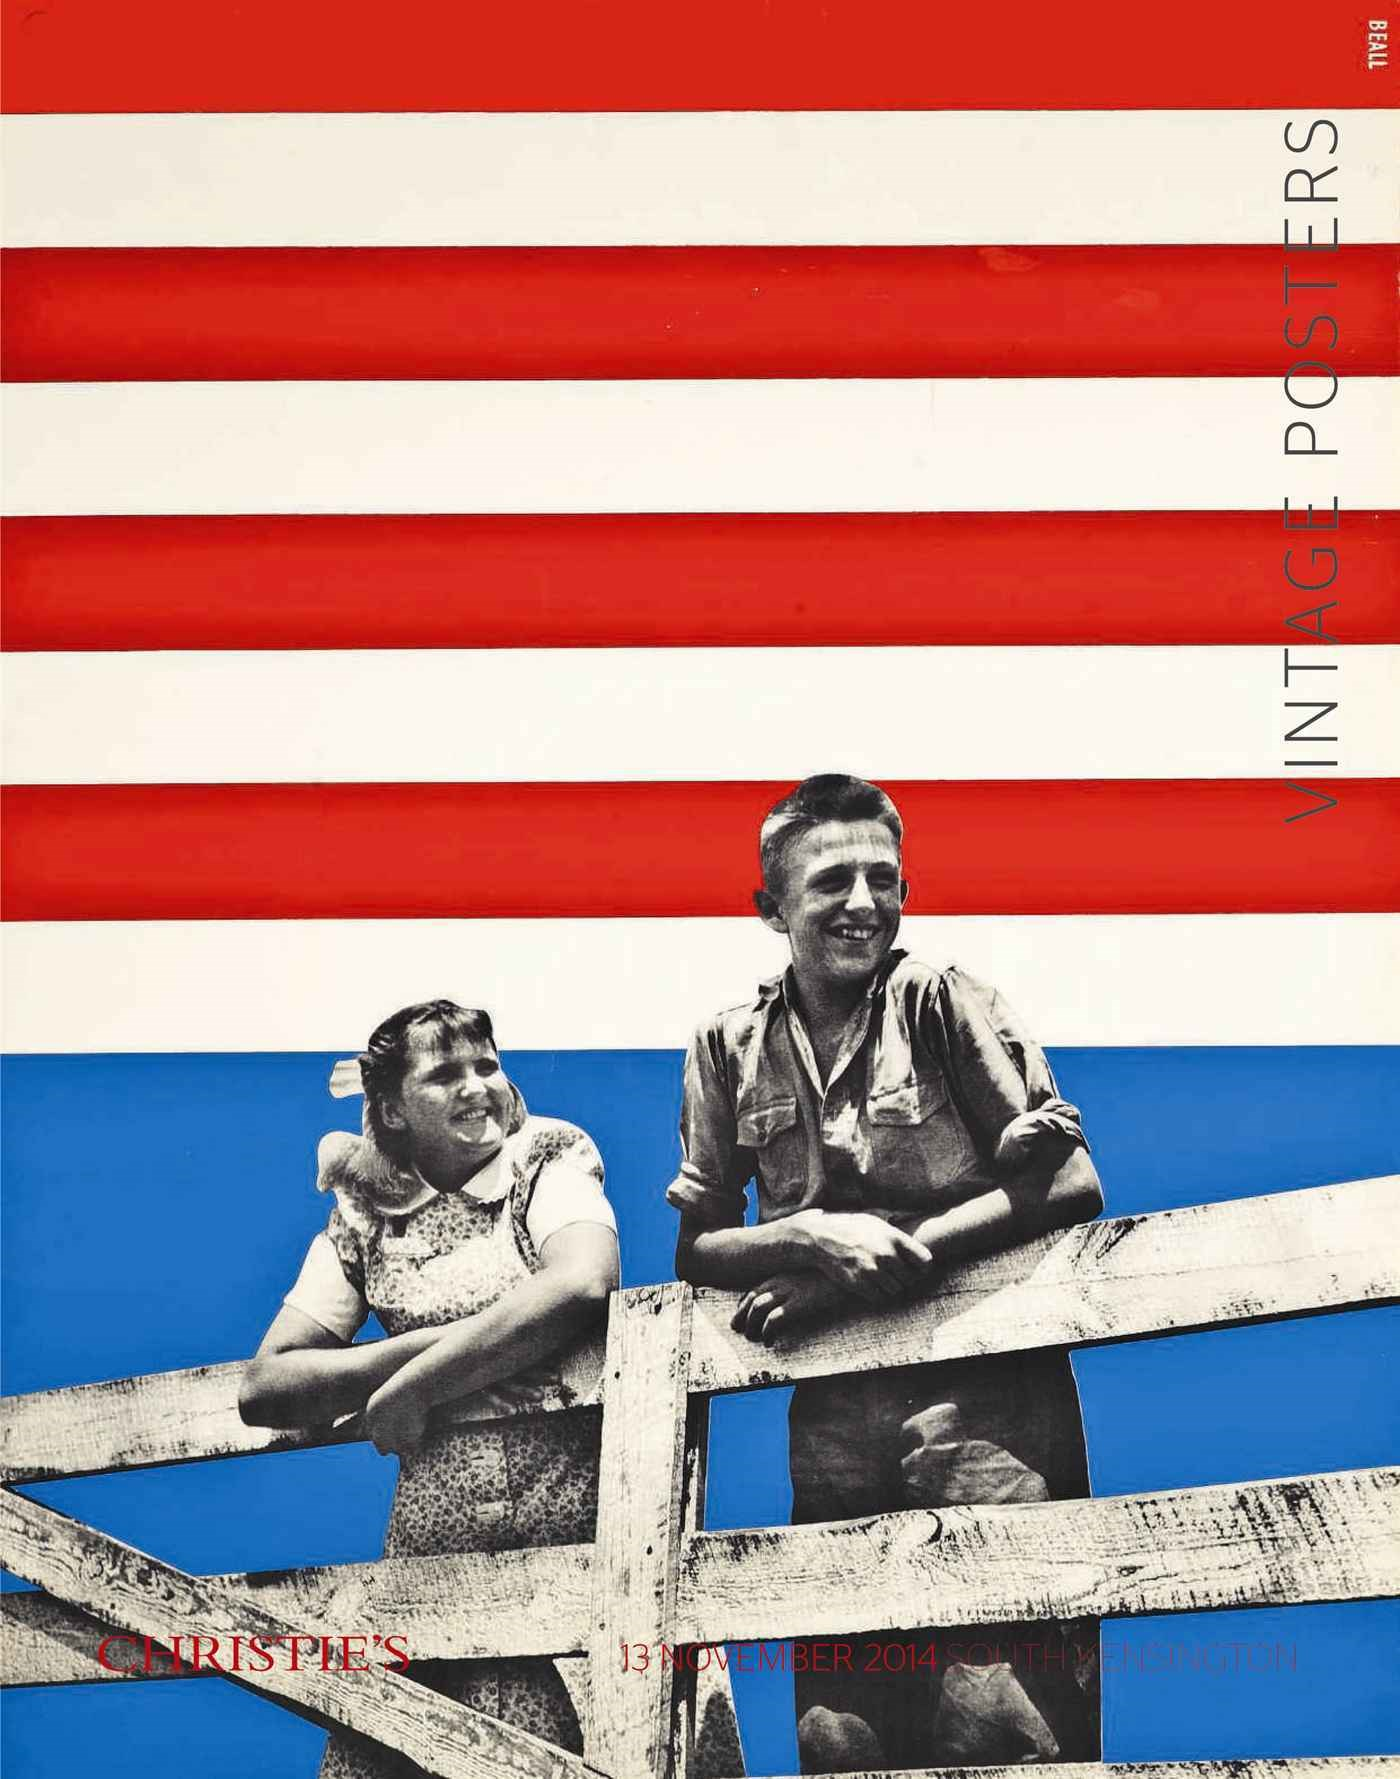 Vintage Posters auction at Christies